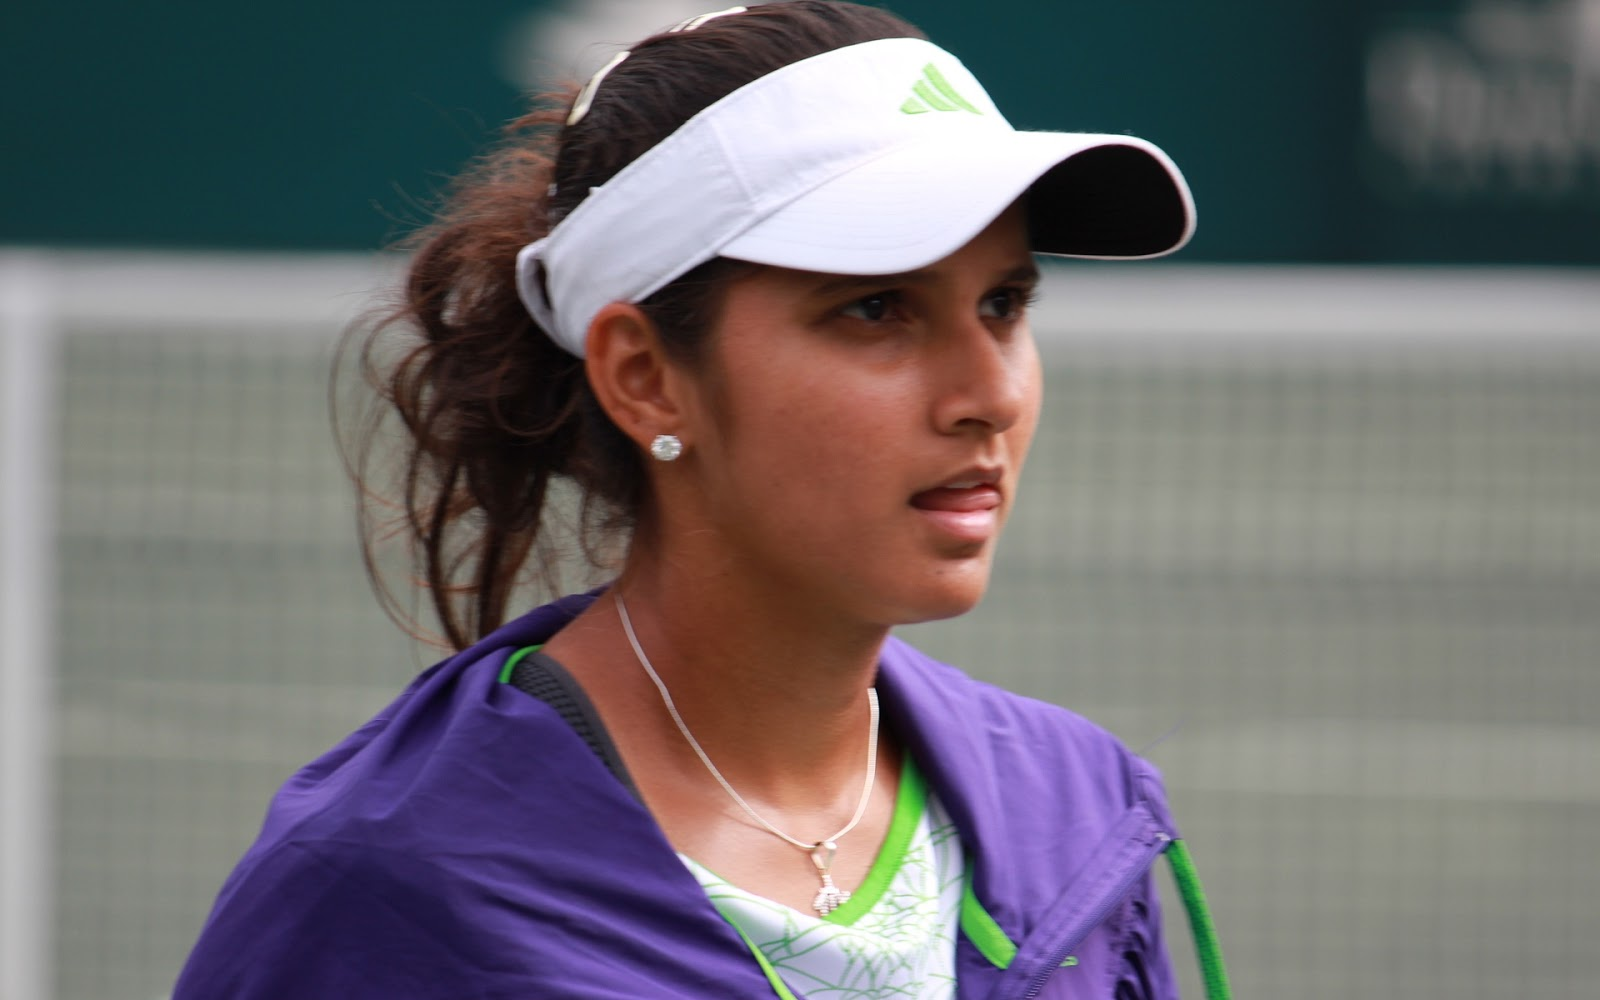 Saniya-Mirza-Tenis-Player-Hd-Images-and-Wallpapers